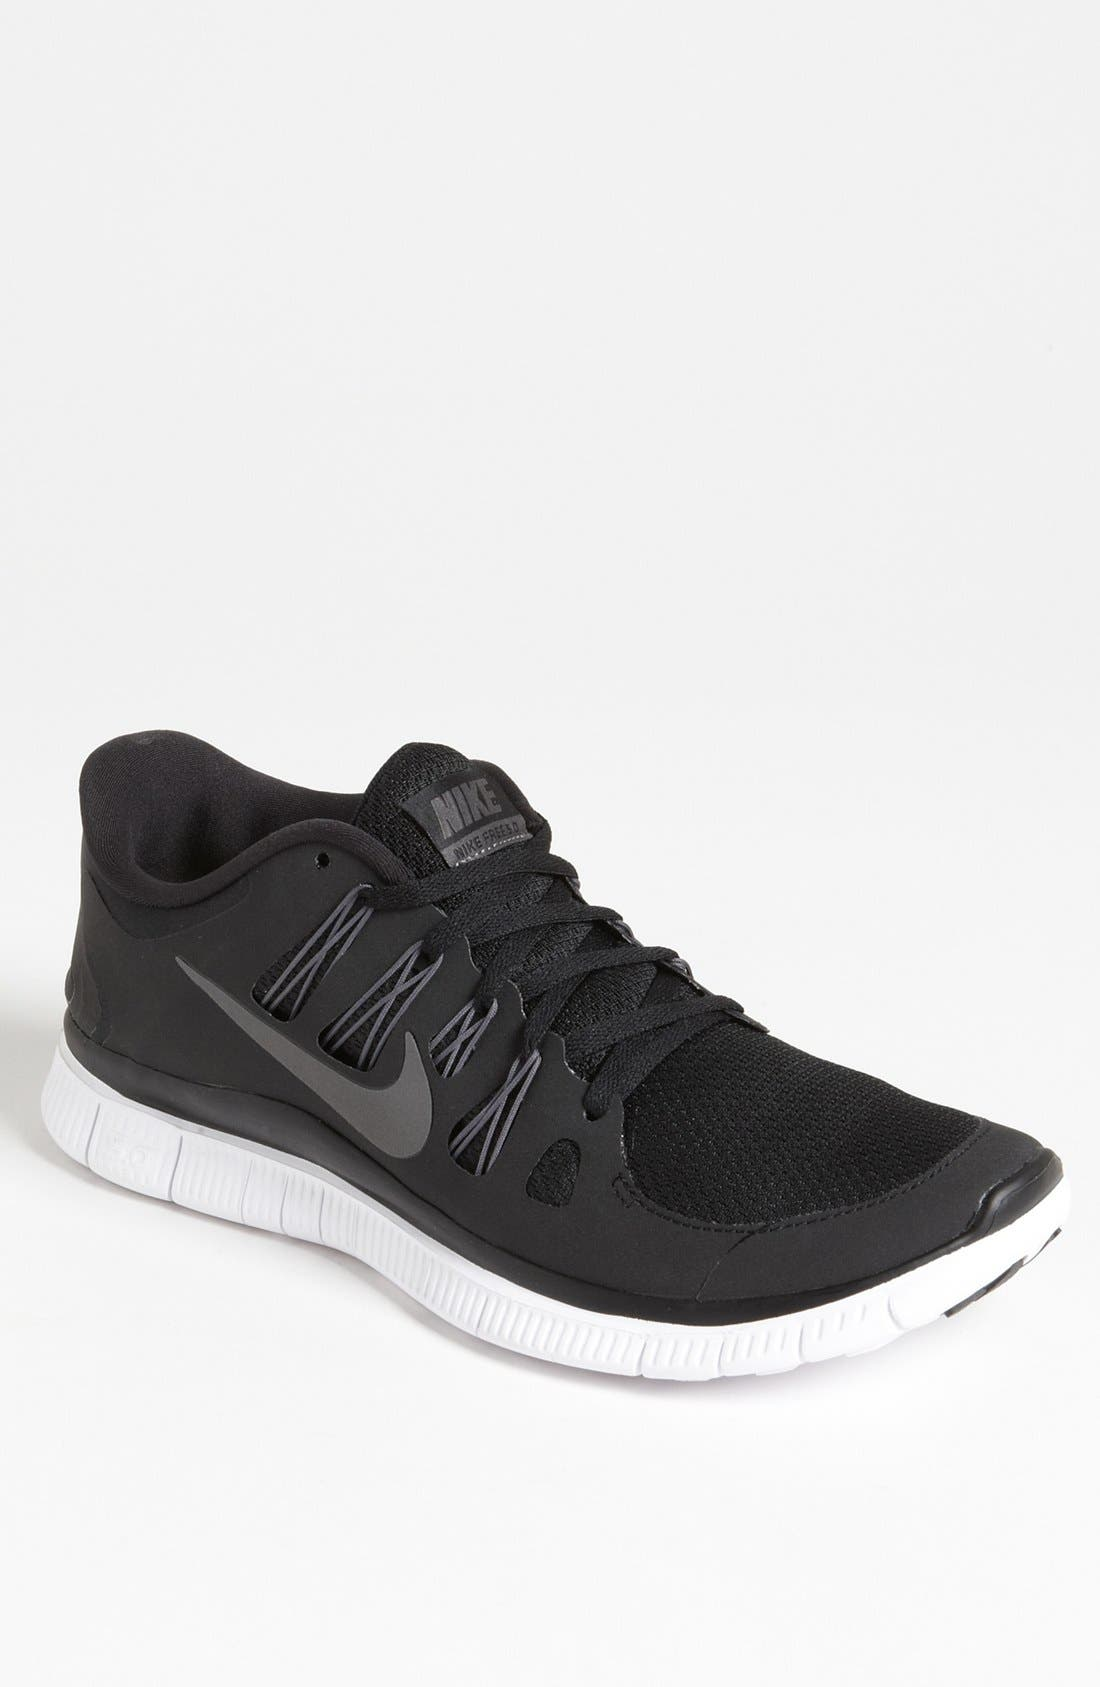 Main Image - Nike 'Free 5.0+' Running Shoe (Men)